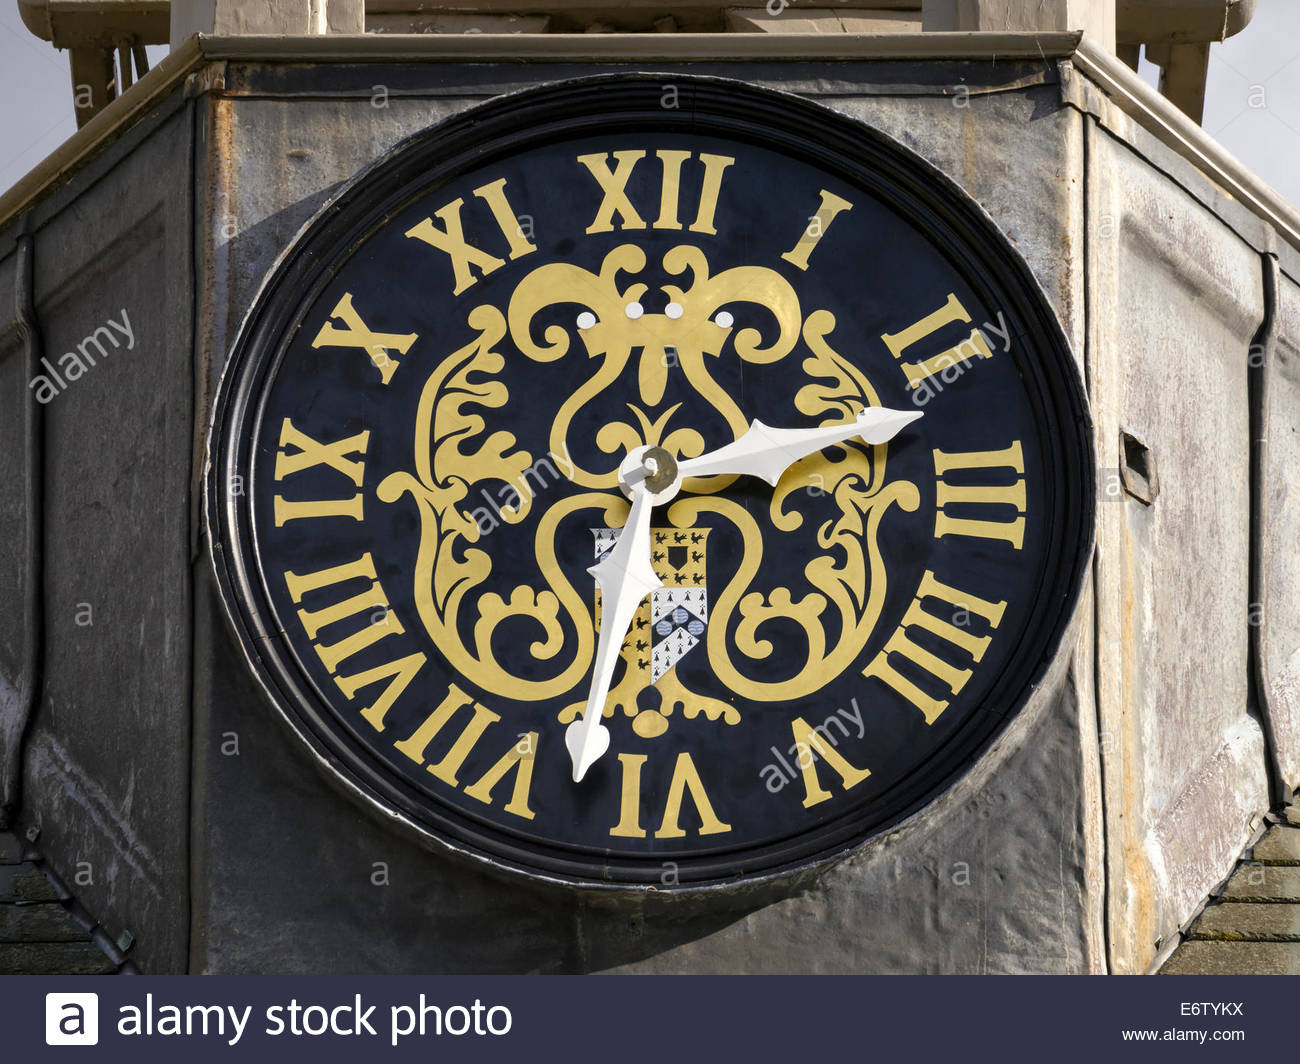 Ornate old clock face, black with gold roman numerals, Belton House, Grantham, Lincolnshire, England, UK - Stock Image